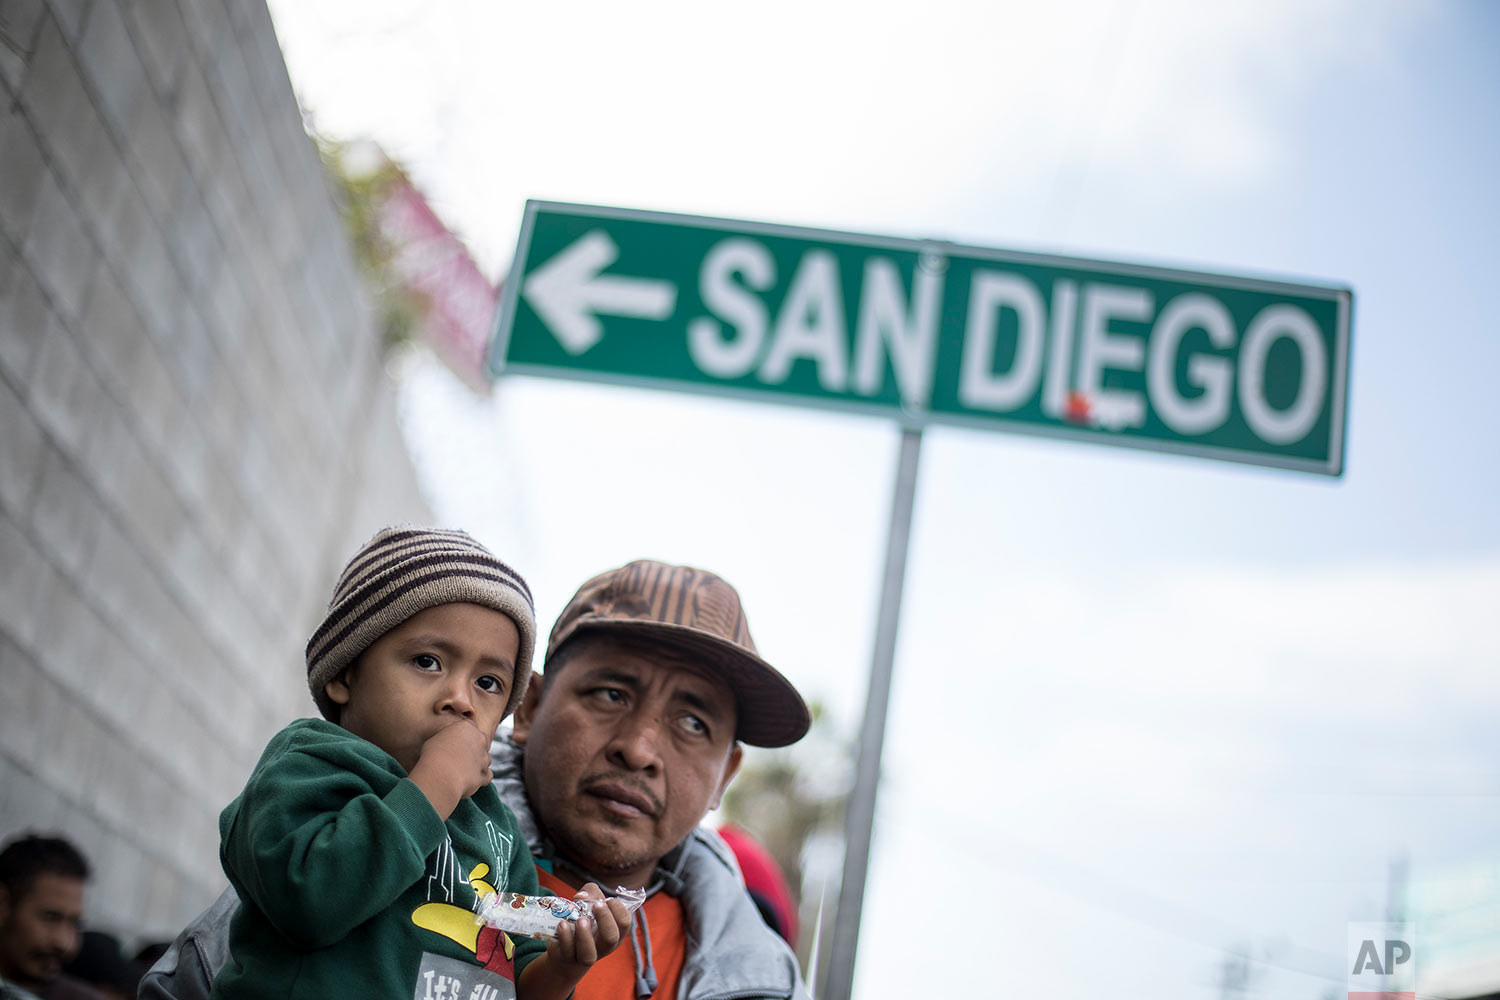 A father and his son await tutorship by immigration lawyers in Tijuana, Mexico, Friday, April 27, 2018. Close to to 200 migrants from Central America, mostly from Honduras, arrived in Tijuana seeking to enter the United States. (AP Photo/Hans-Maximo Musielik)